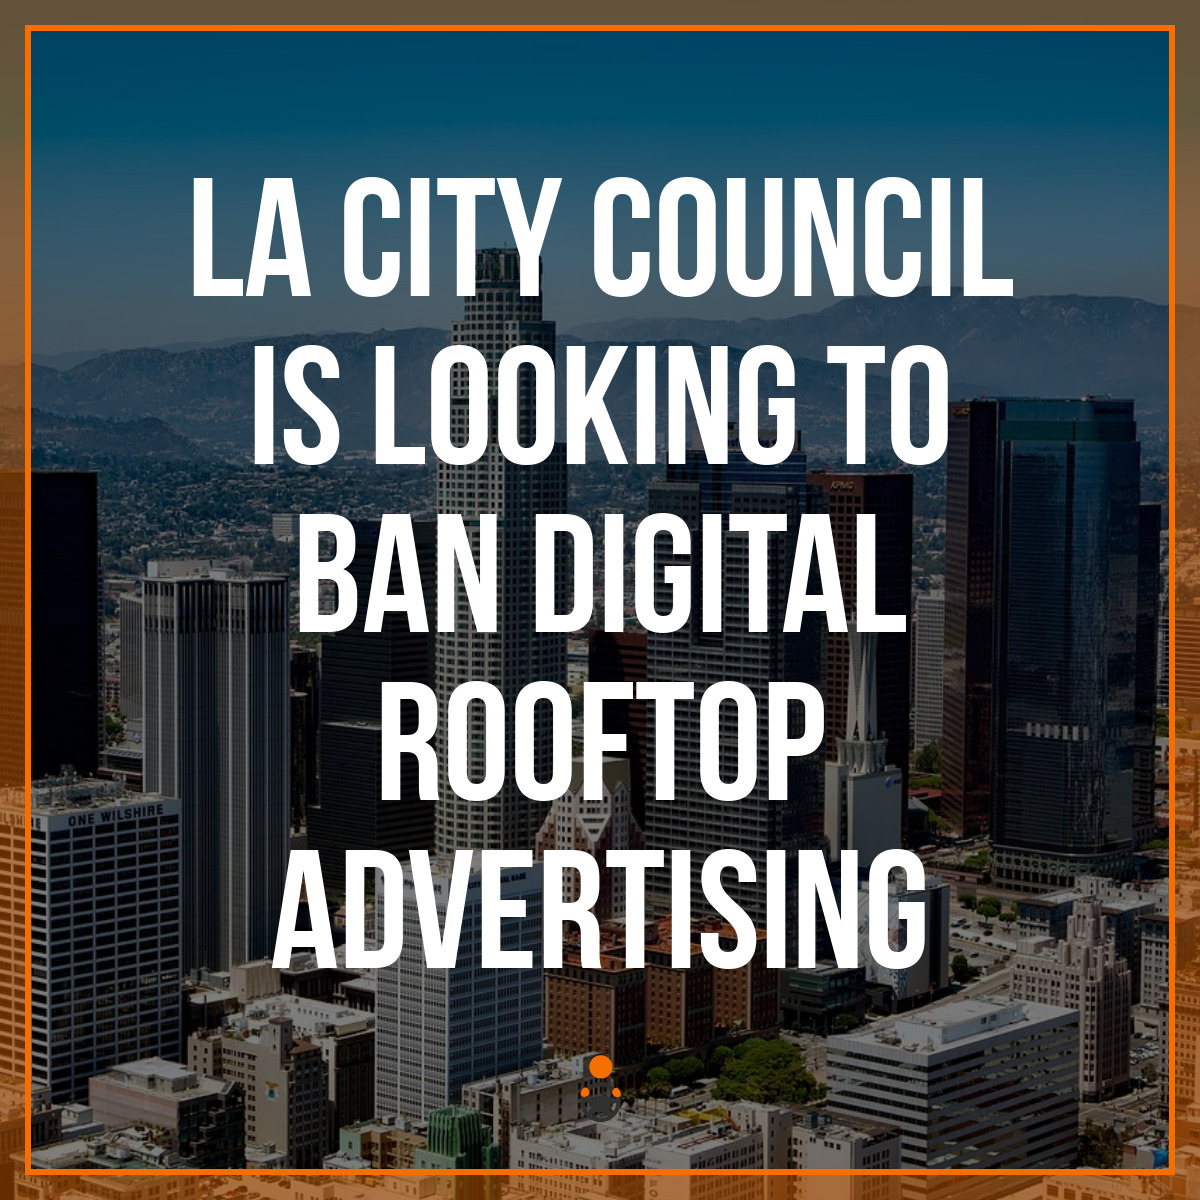 LA City Council is Looking to Ban Digital Rooftop Advertising